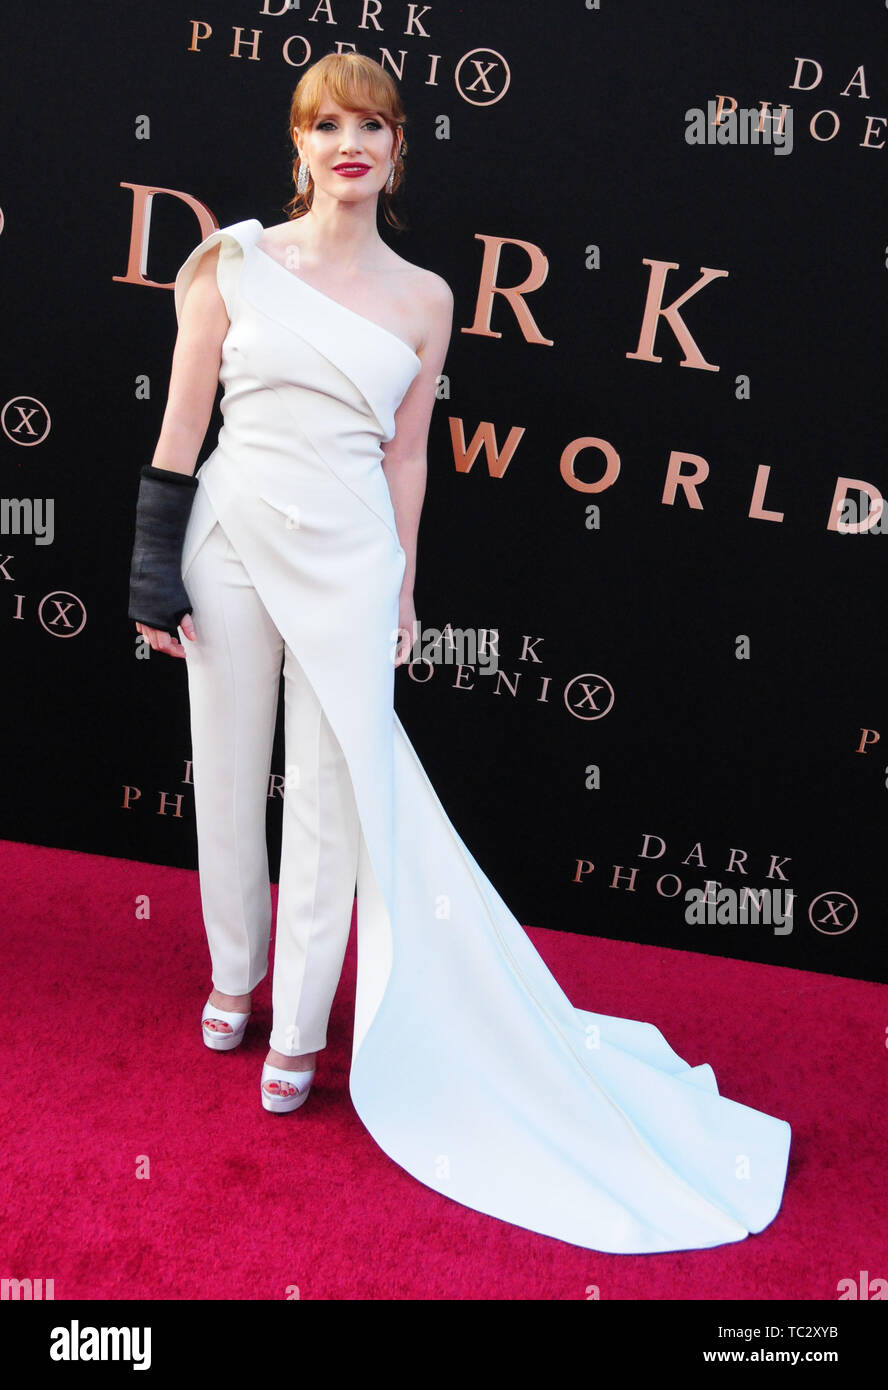 Hollywood, California, USA 4th June 2019 Actress Jessica Chastain attends the World Premiere of 20th Century Fox's 'Dark Phoenix' on June 4, 2019 at TCL Chinese Theatre IMAX in Hollywood, California, USA. Photo by Barry King/Alamy Live News Stock Photo